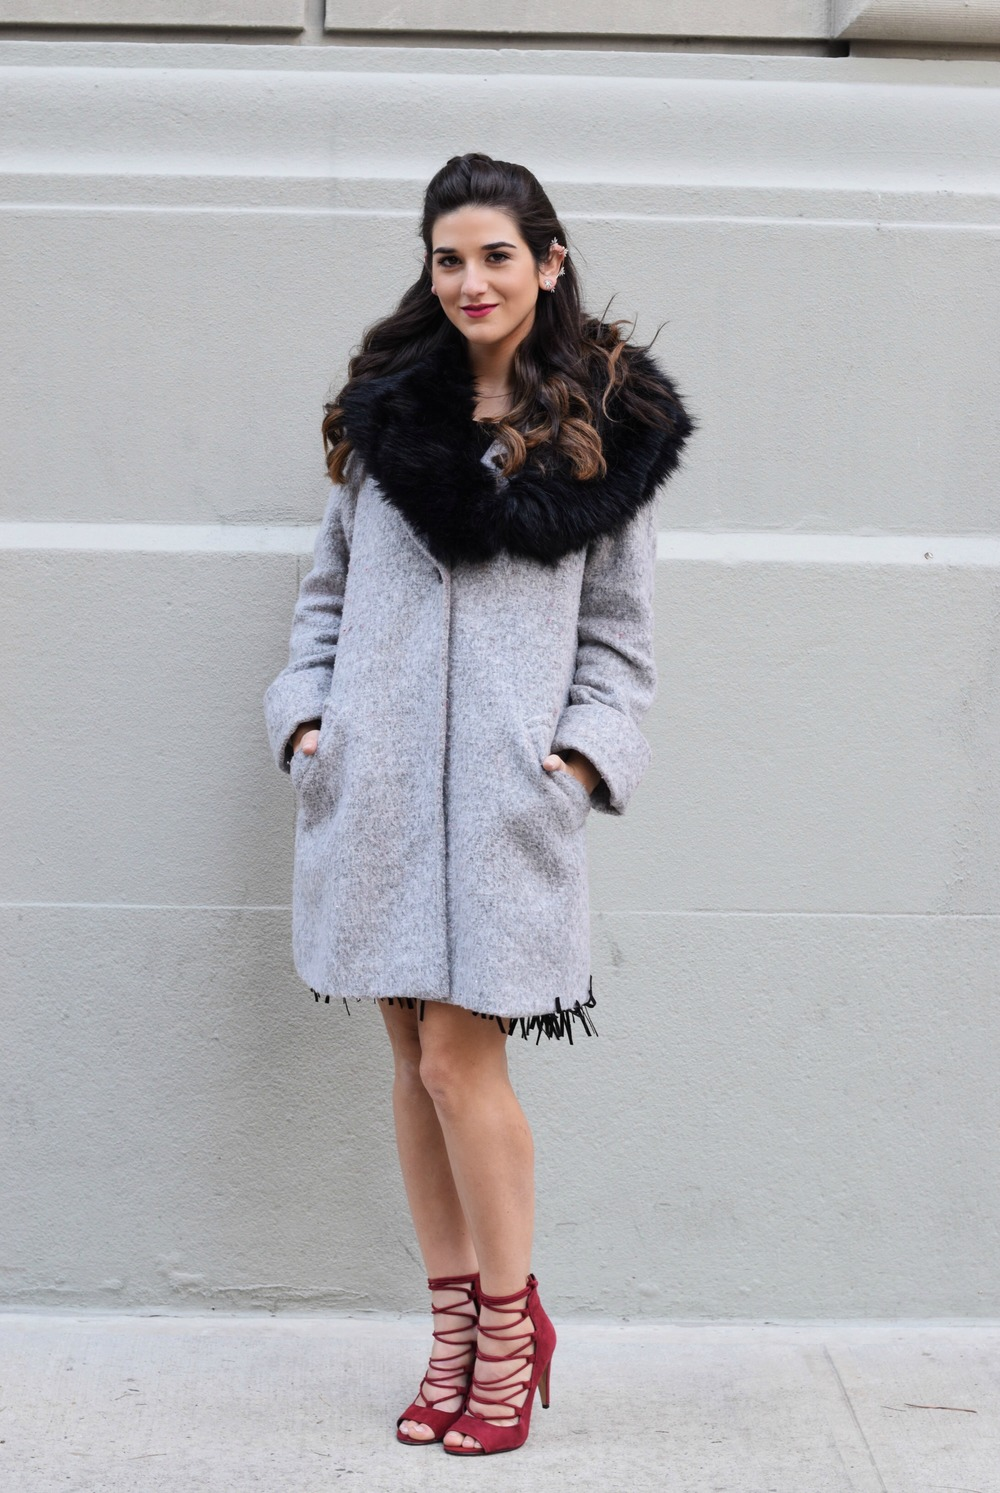 Dripping In Diamonds Elahn Jewels Louboutins & Love Fashion Blog Esther Santer NYC Street Style Blogger Black Fur Stole Earrings Jewelry Peacoat Grey Coat Winter Wear Shopping Beauty Chic Rings Red Heels Sandals Hair Inspo Inspiration Outfit OOTD Zara.jpg